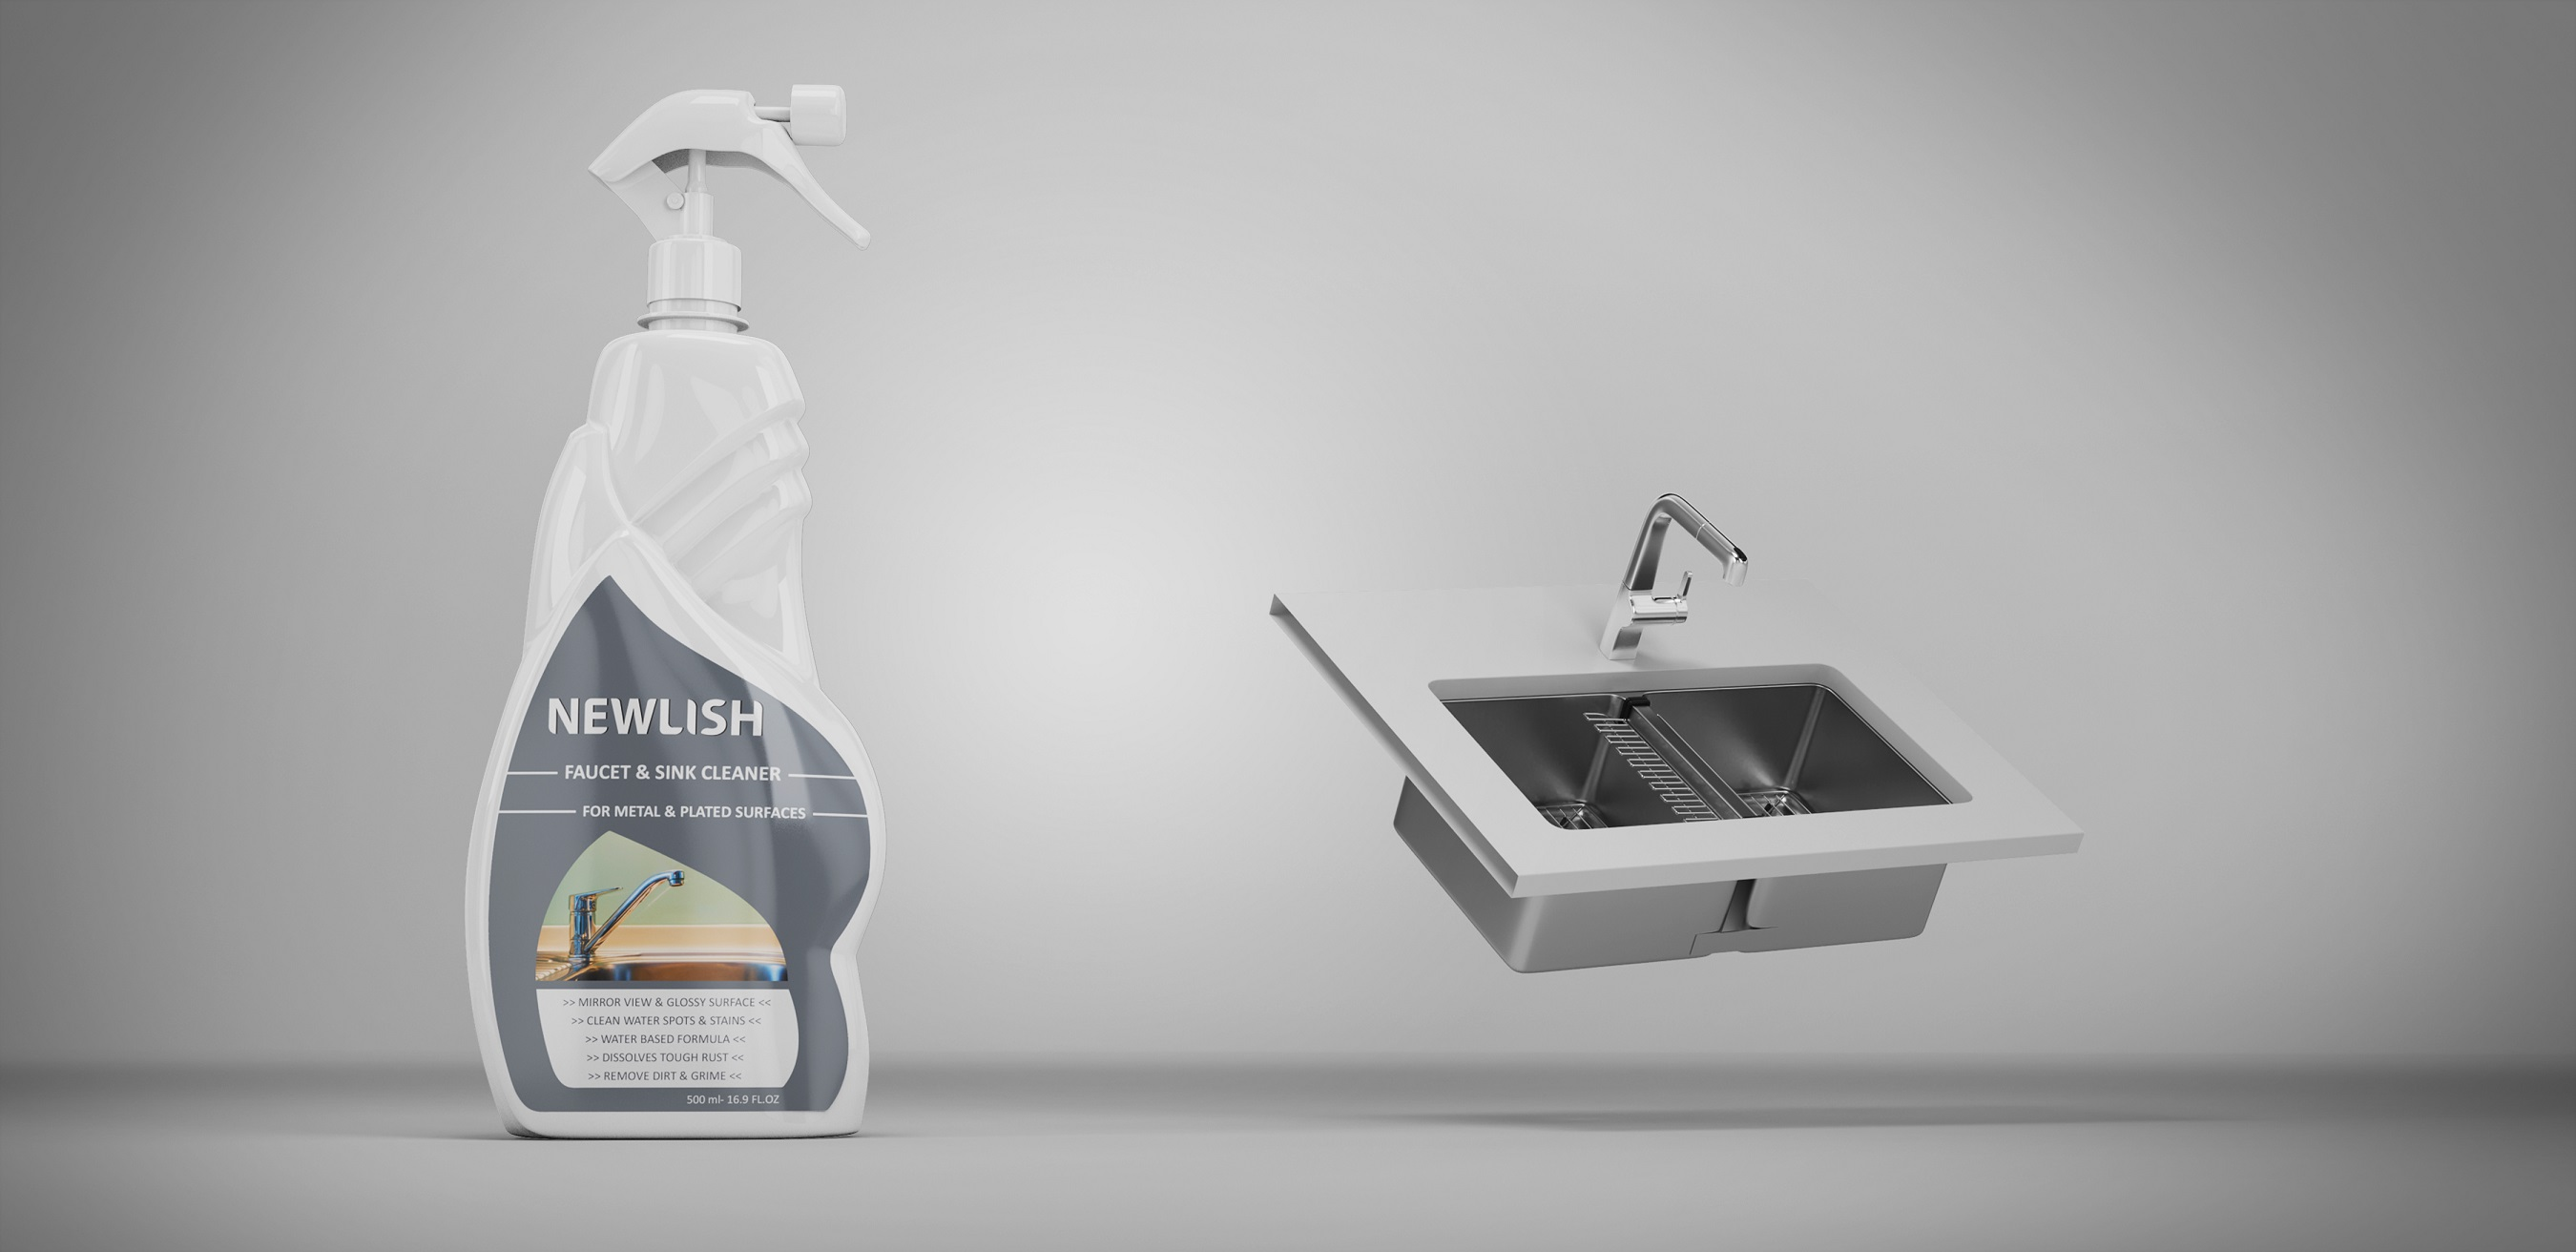 NEWLISH Faucet and Sink Cleaner